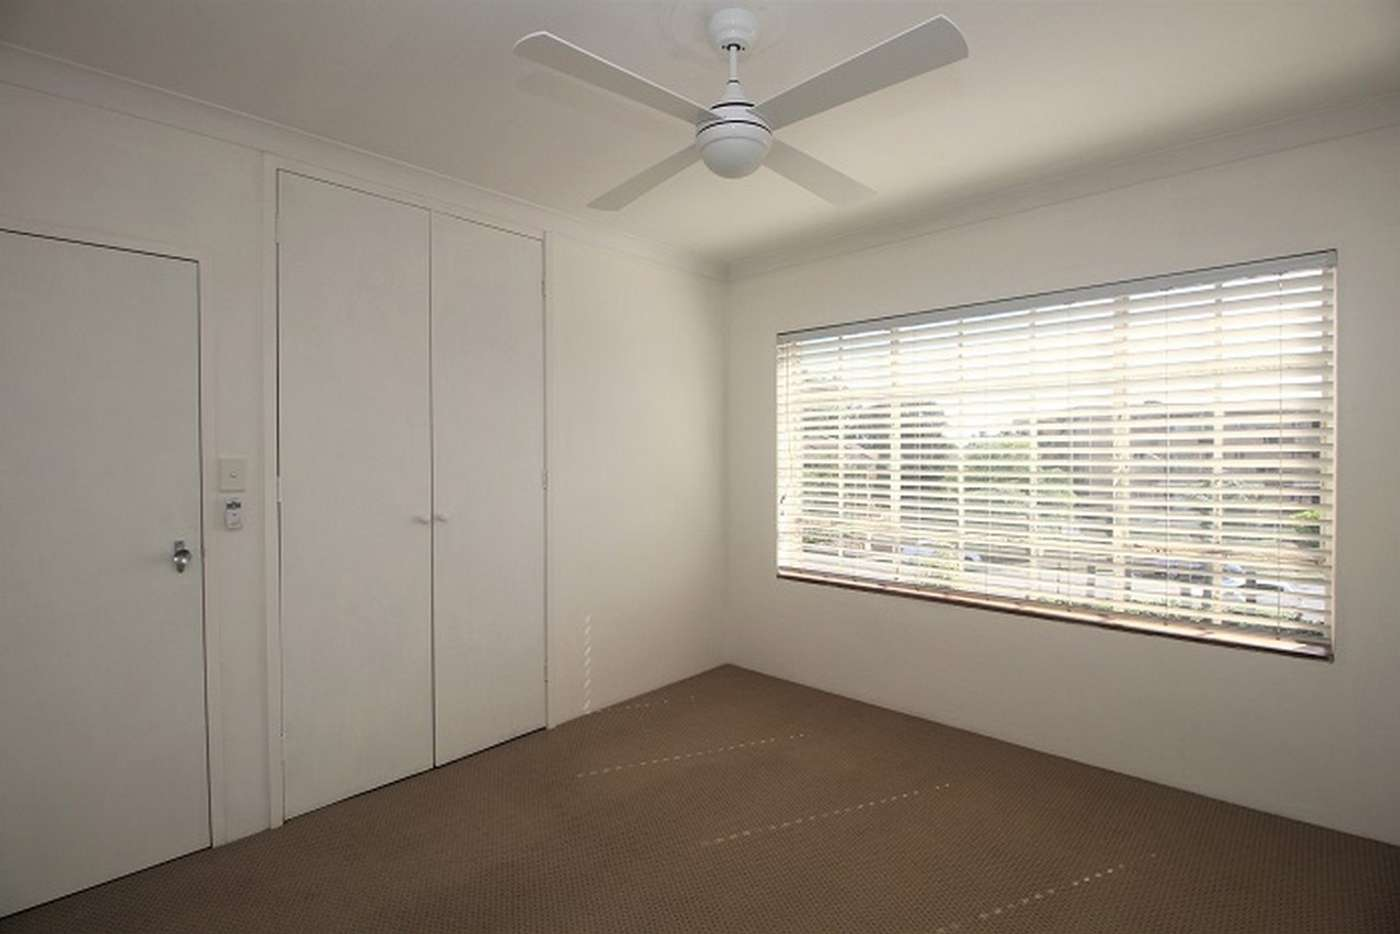 Sixth view of Homely unit listing, 15/2 Iron Street, North Parramatta NSW 2151